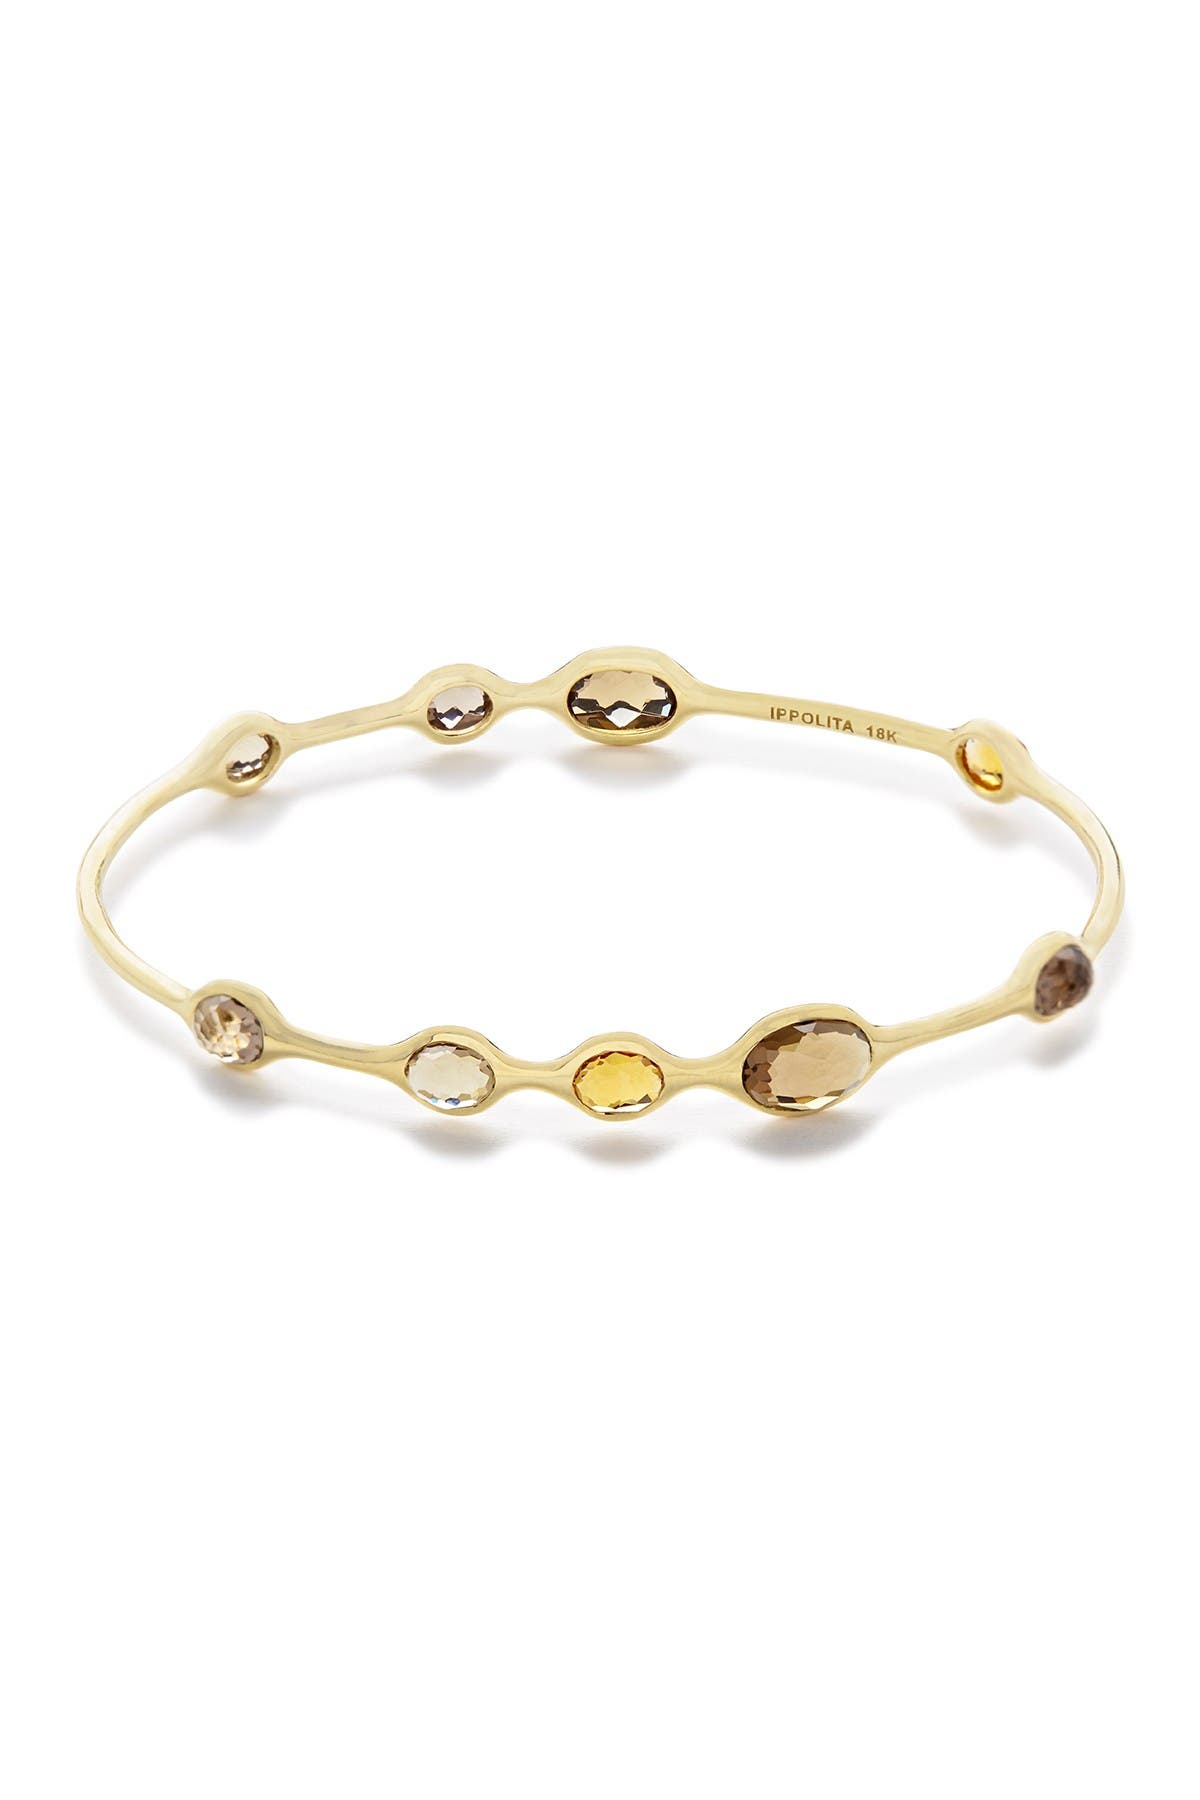 Image of Ippolita Rock Candy Toffee 18K Yellow Gold 9-Stone Bangle Bracelet